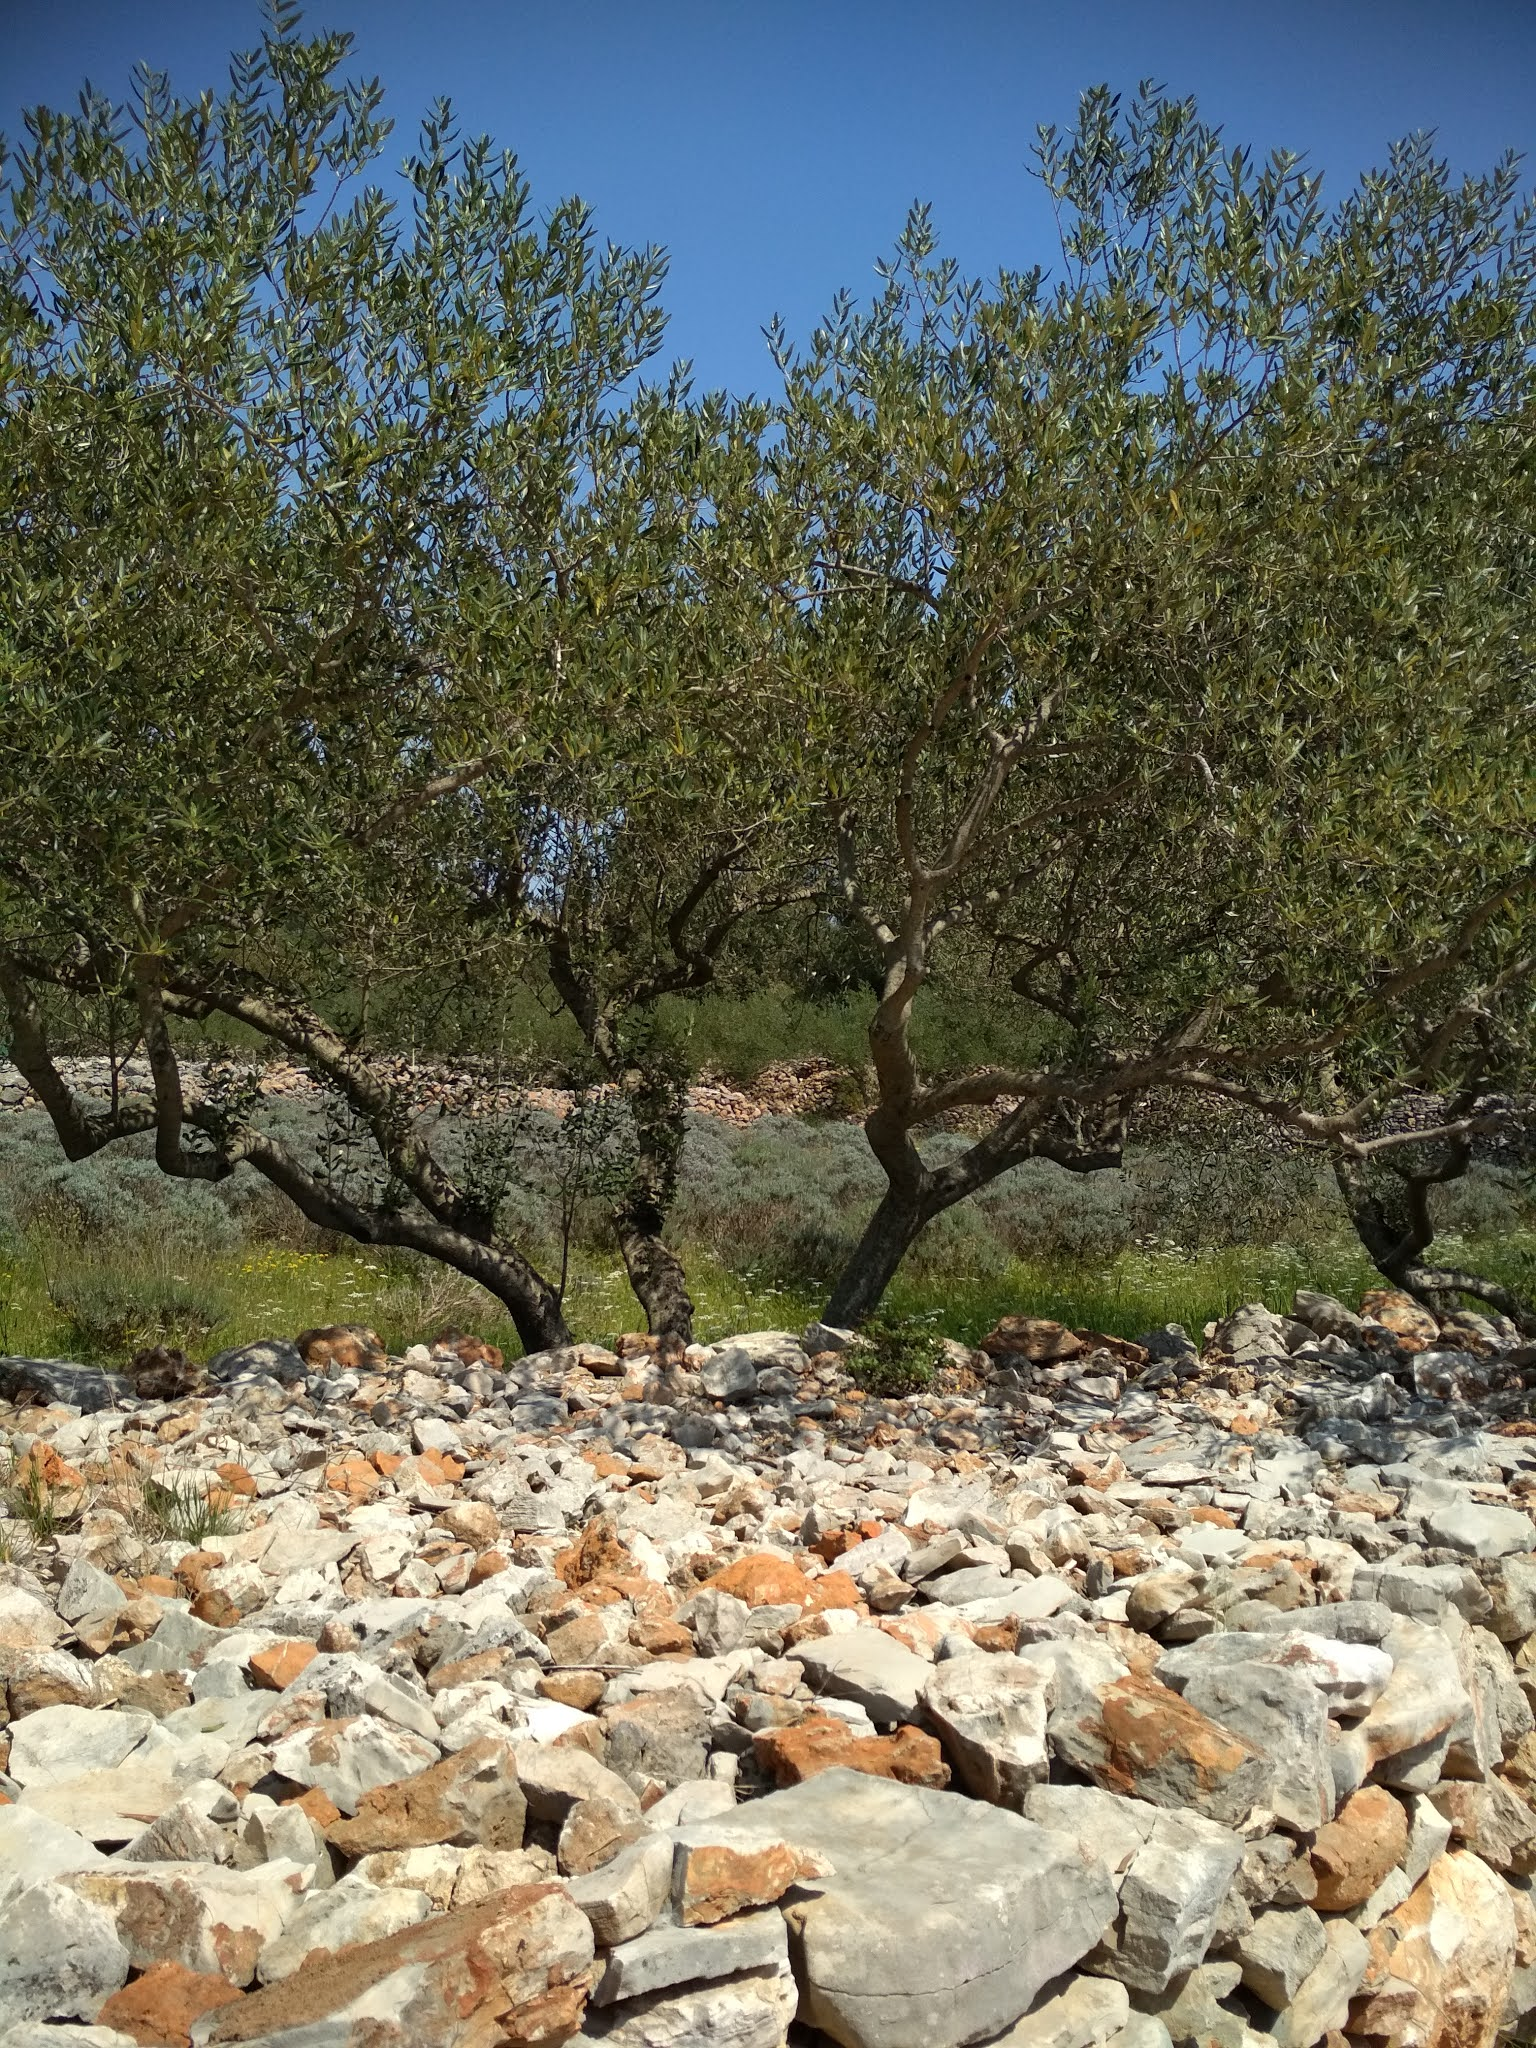 #MODAODARADOSTI VISIT STARI GRAD PLAIN, A FULLY PRESERVED ANCIENT GREEK AGRICULTURAL AREA